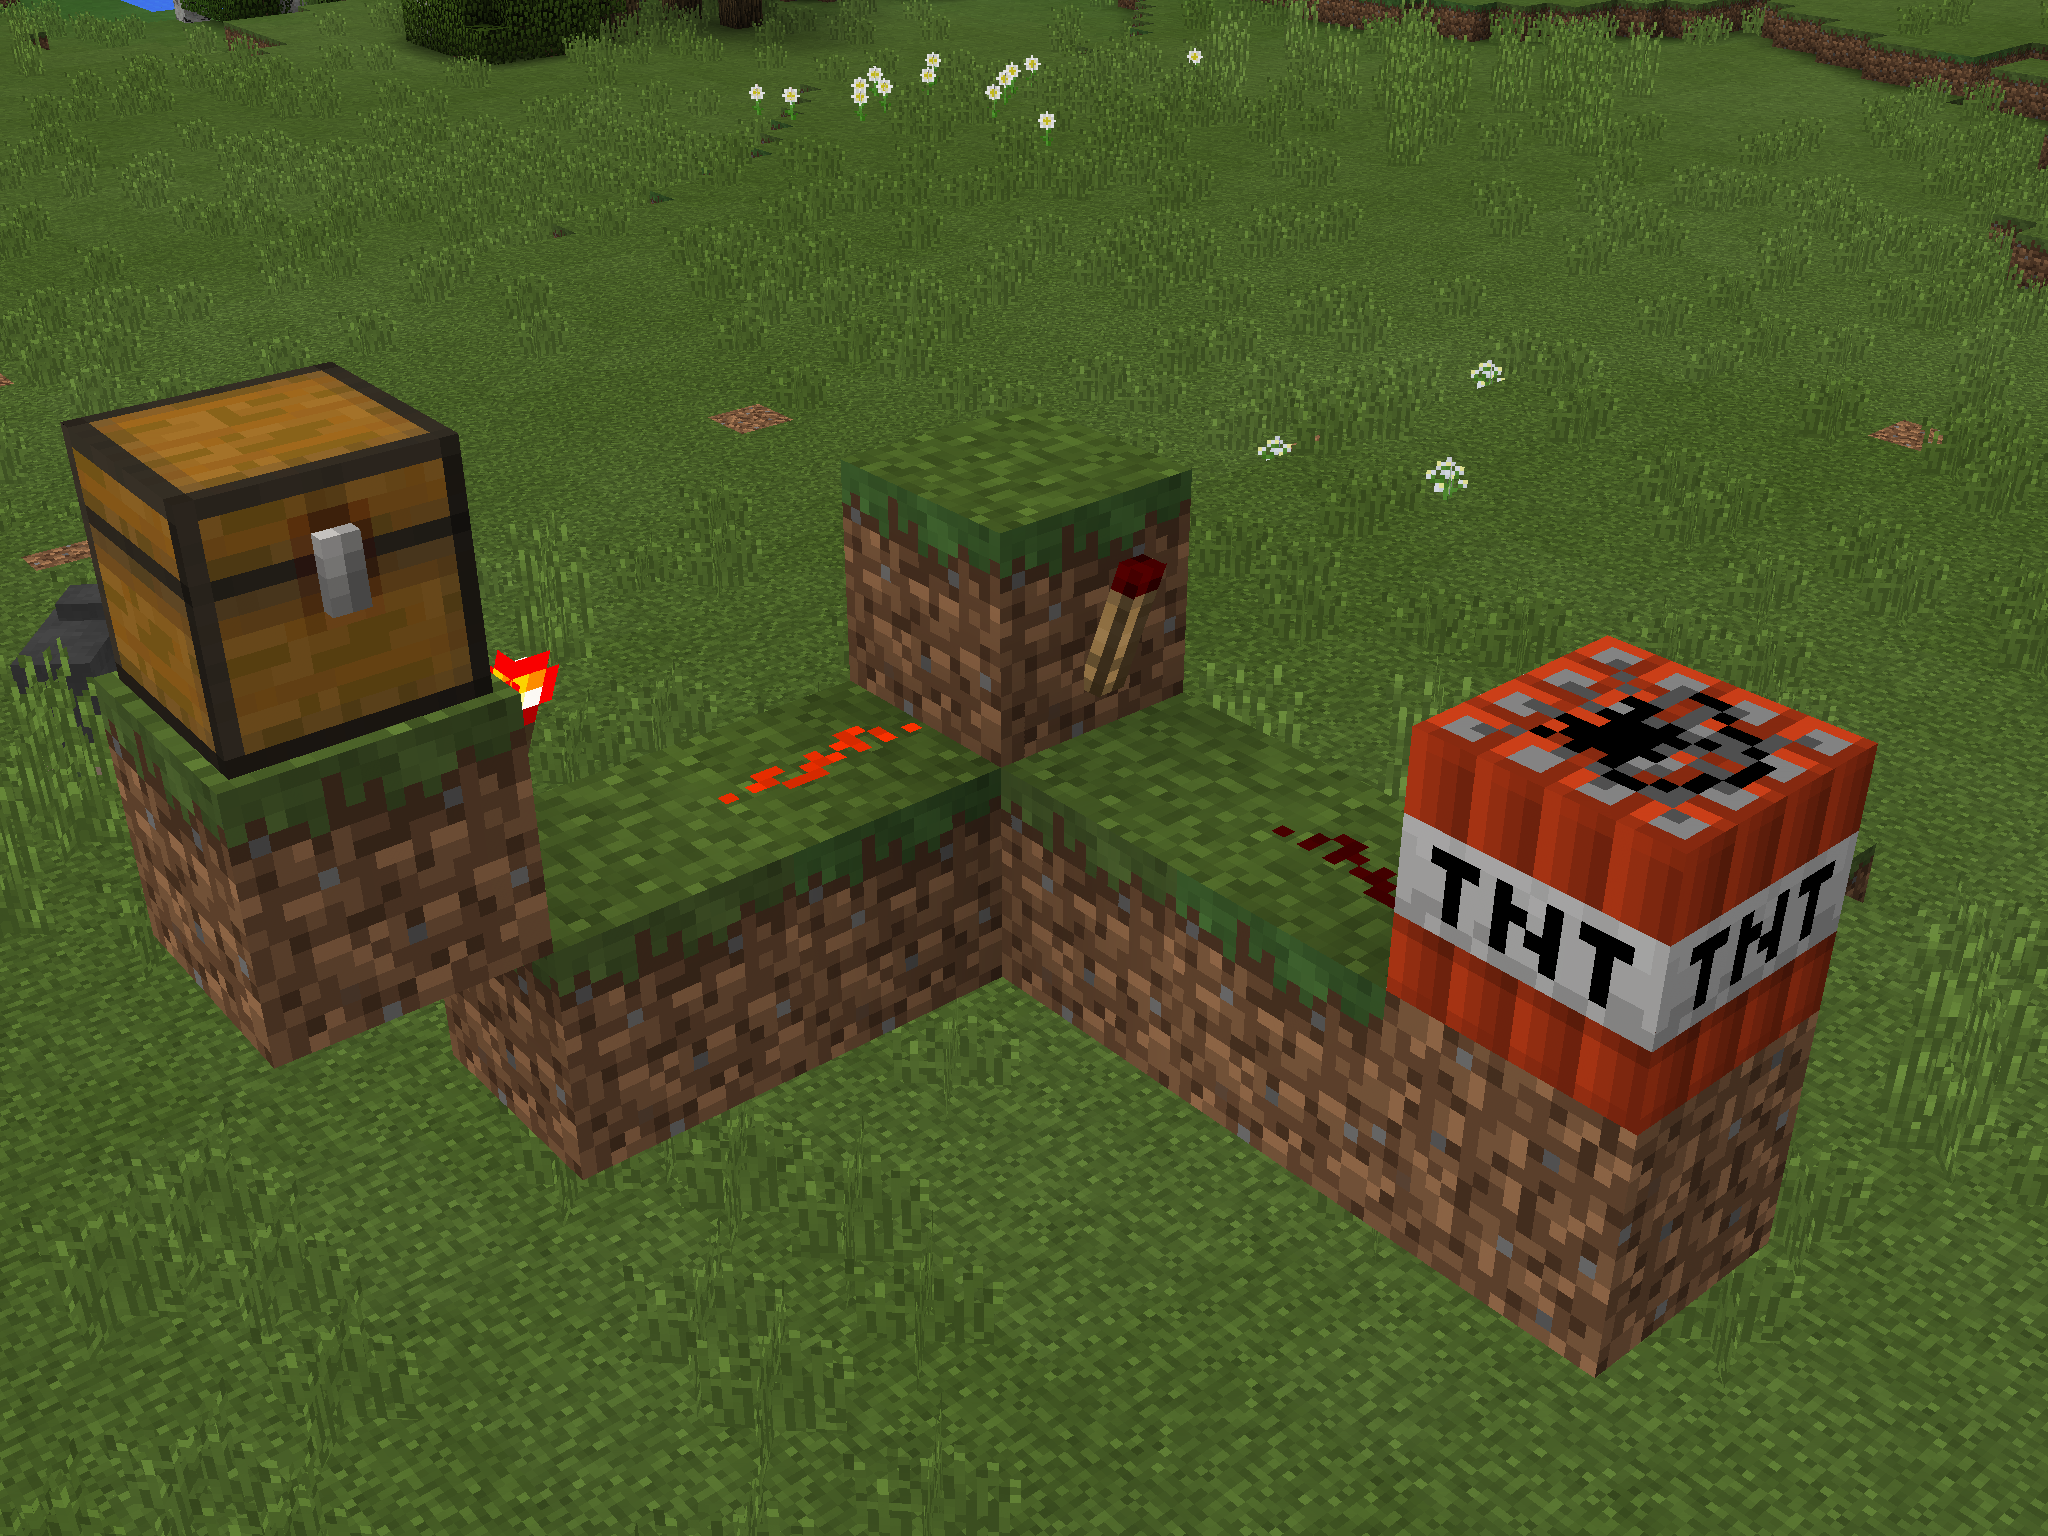 Redstone Wiring Mod Mcpe 11943 Trapped Chests Dont Emit Energy Jira Chest Weakly Powers A Block